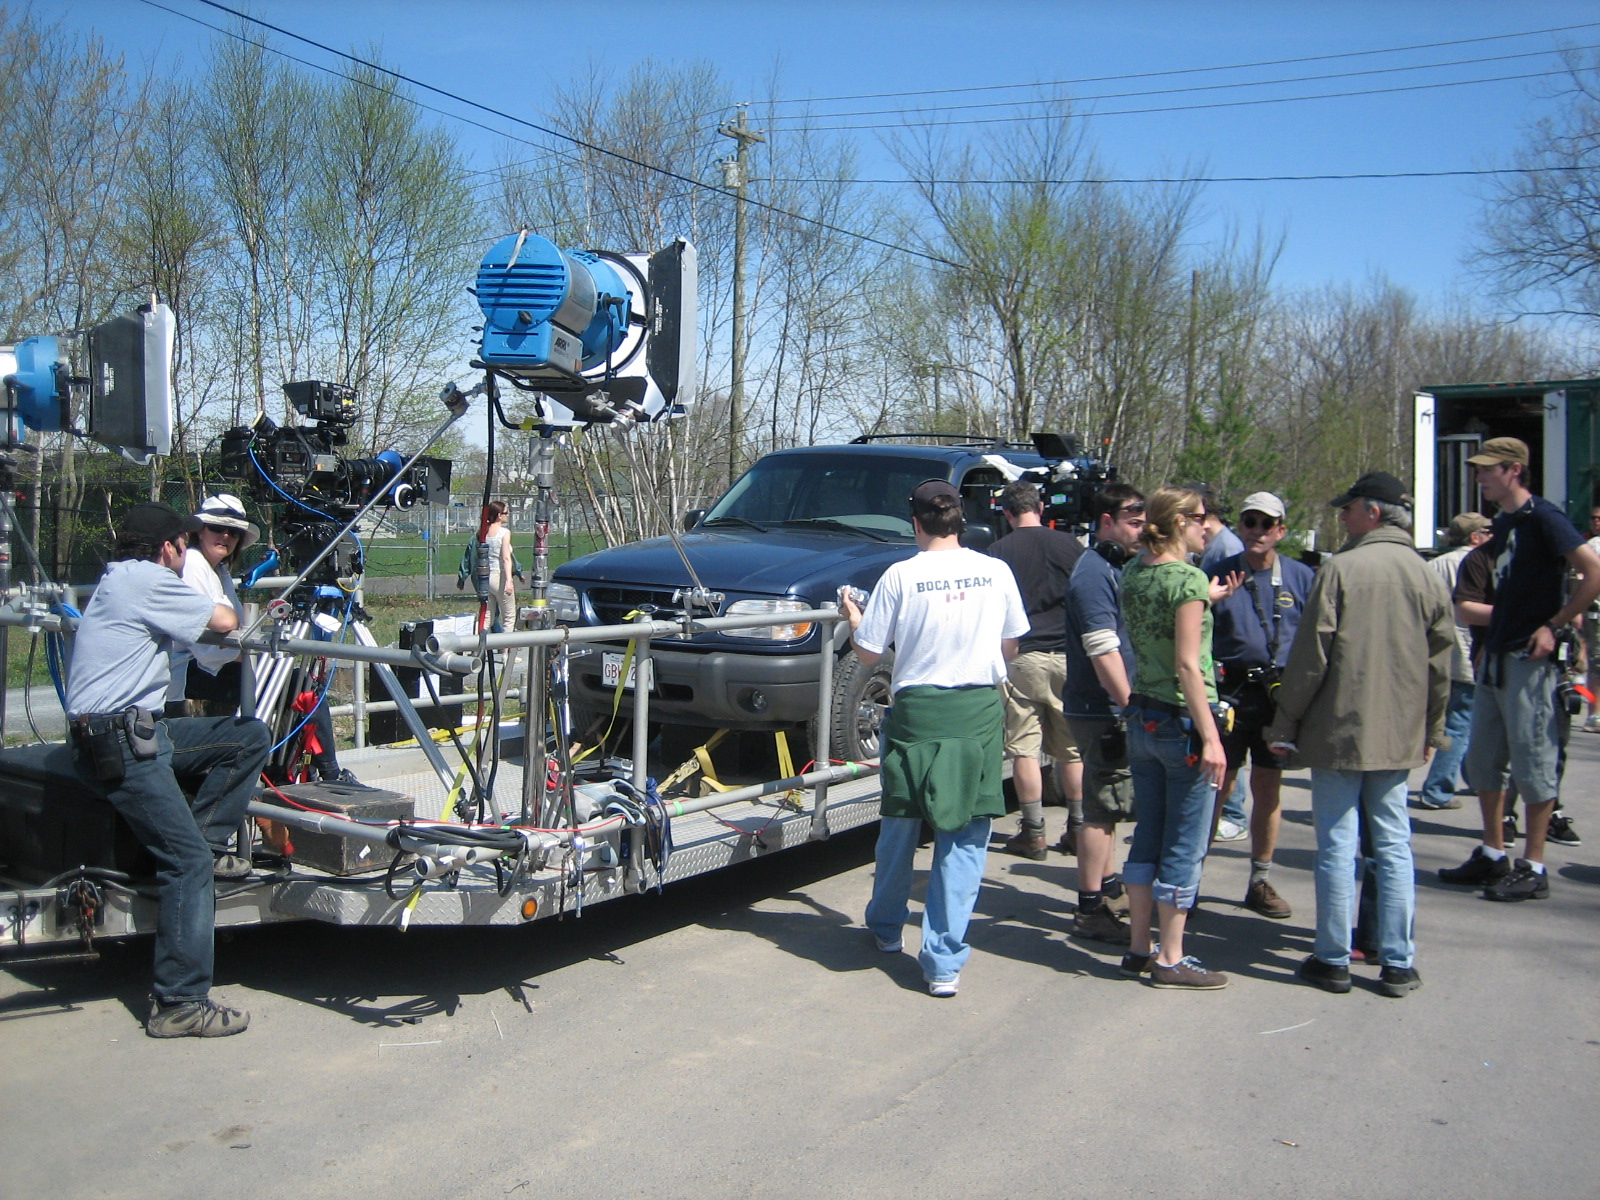 Dream Street Pictures - Sticks and Stones - behind the scenes truck rig